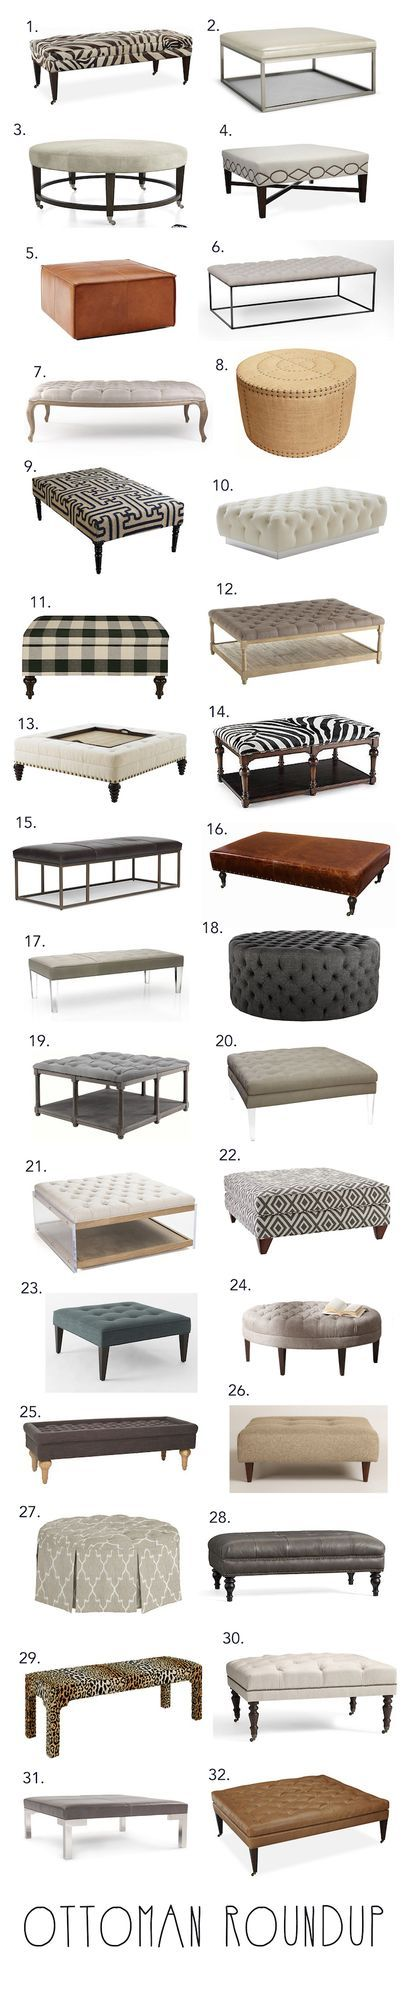 As Henry becomes more mobile I have started looking for a good cocktail ottoman to replace my brass and glass coffee table a.k.a. The Baby Guillotine. We use lots of ottomans like this in our designs